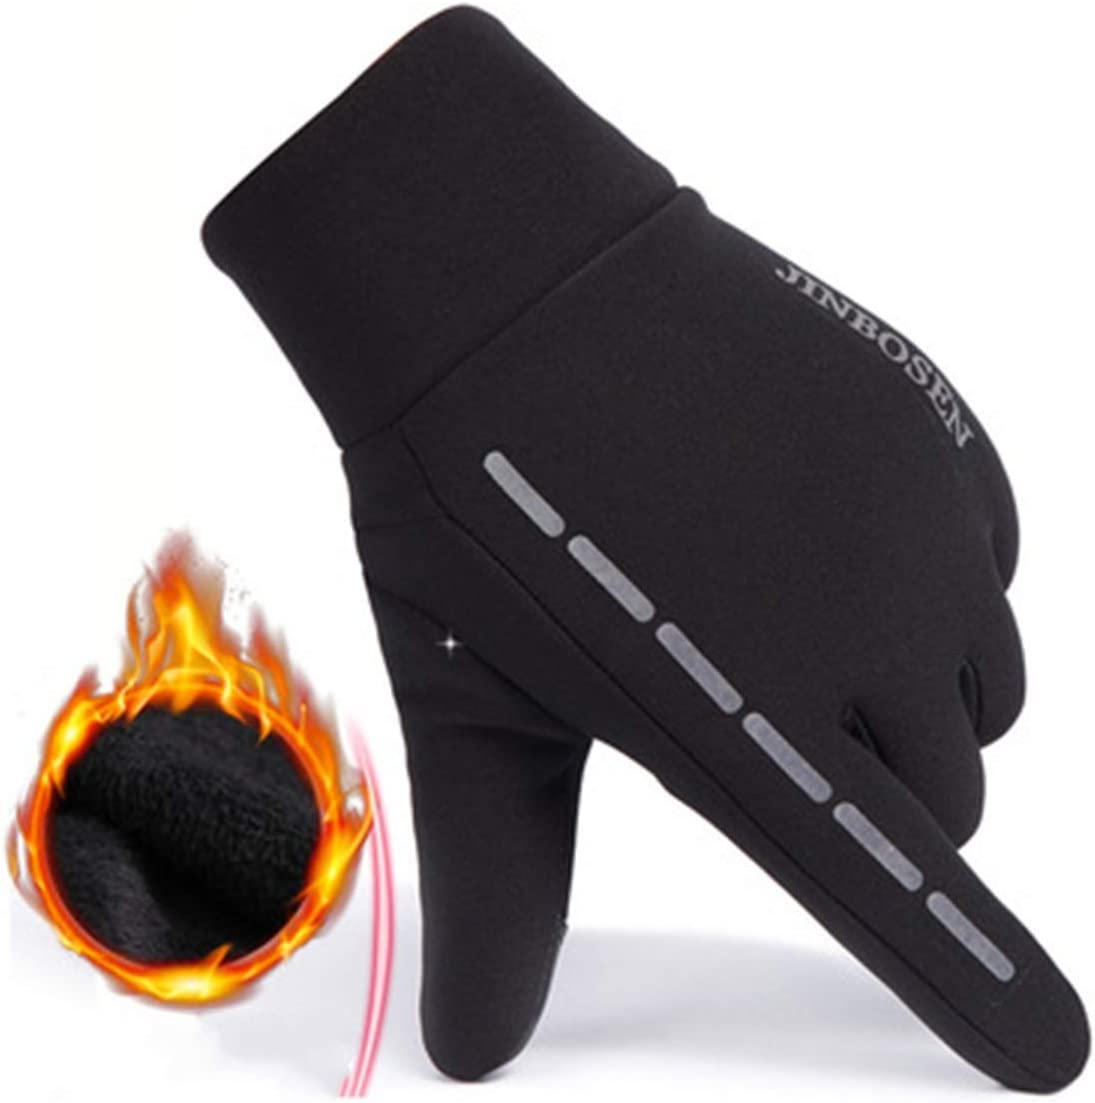 Color : Black HaiQianXin Winter Sport Windproof Fleece Lined Warm Riding Gloves Touch Screen Ski Gloves Motorcycle Men Women Mittens